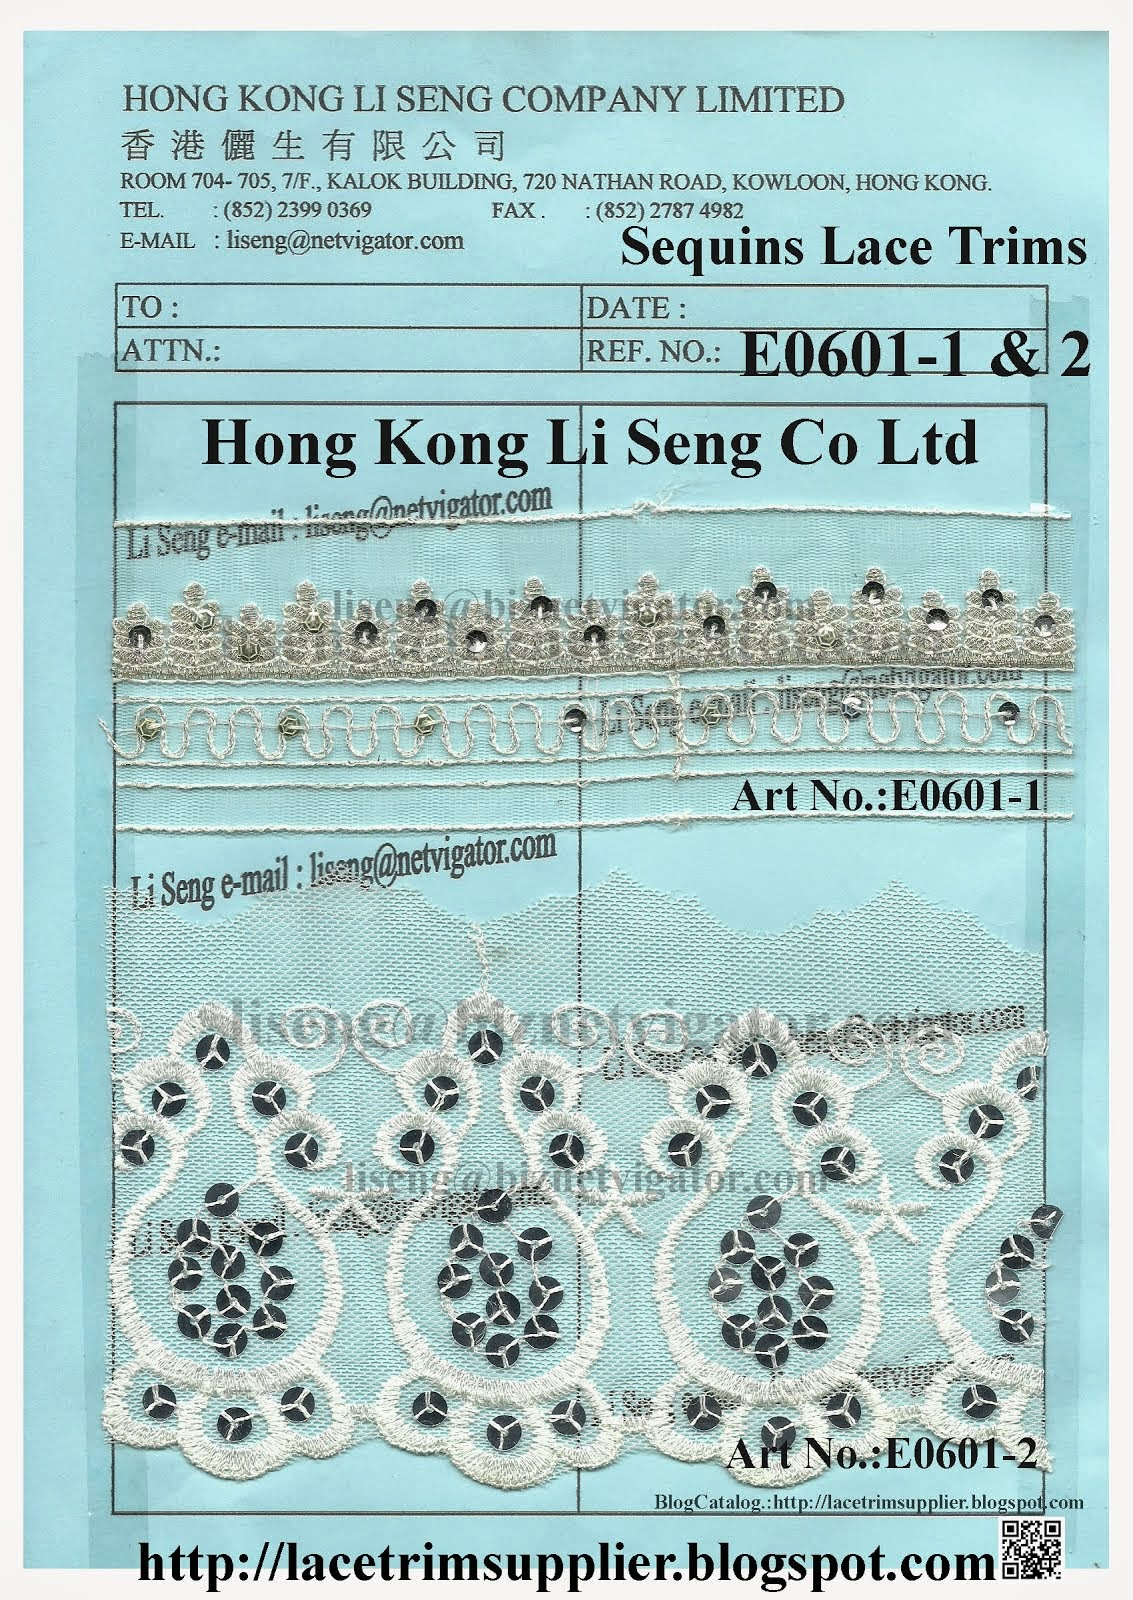 Sequins Lace Trim Wholesale Supplier Factory - Hong Kong Li Seng Co Ltd